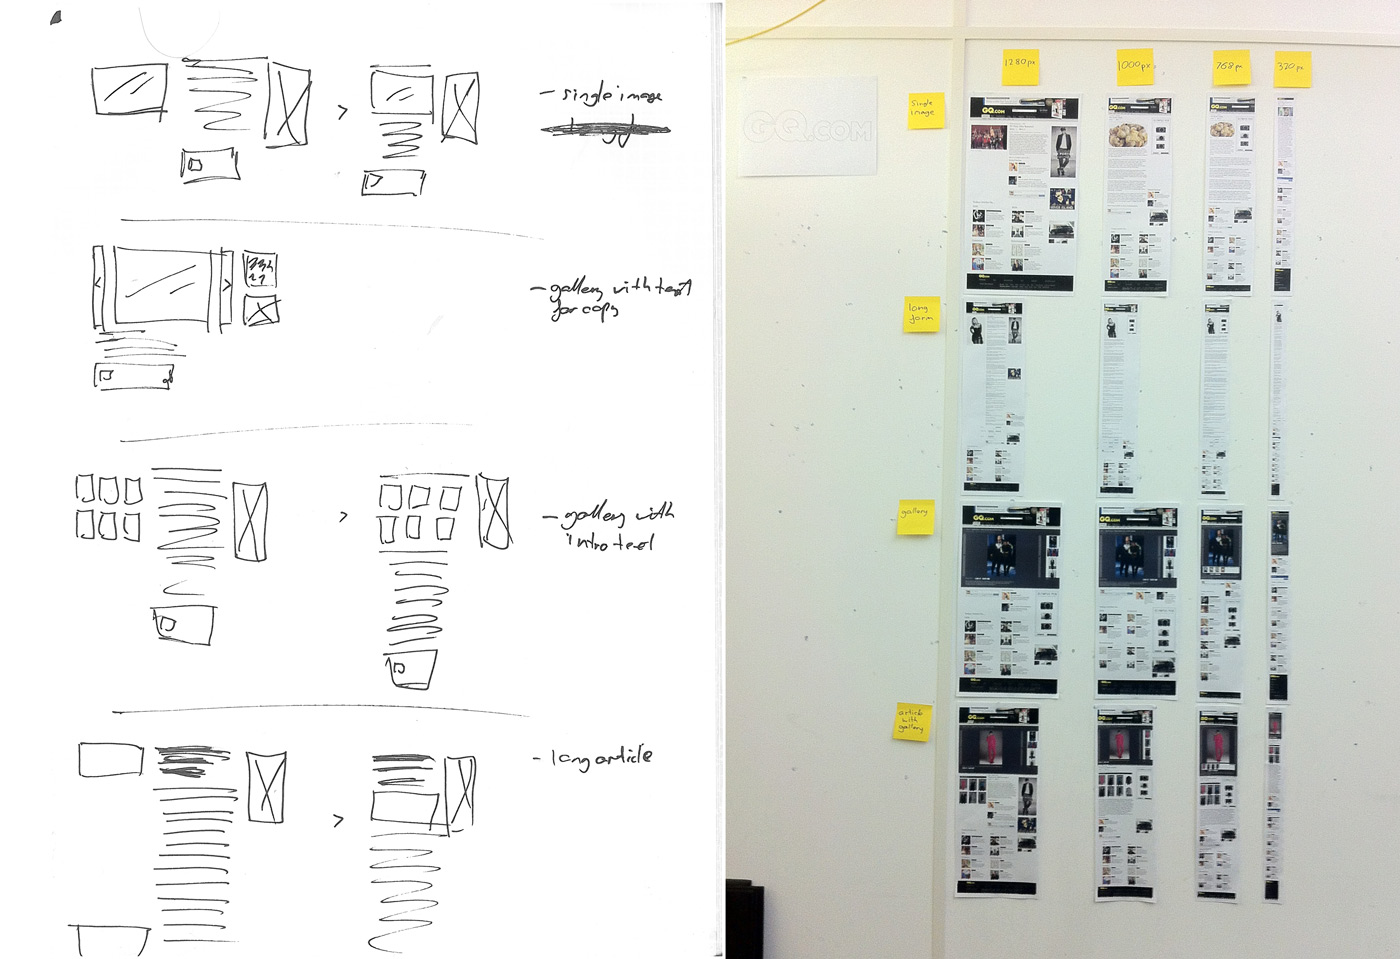 From early sketch to fully fleshed out wireframes